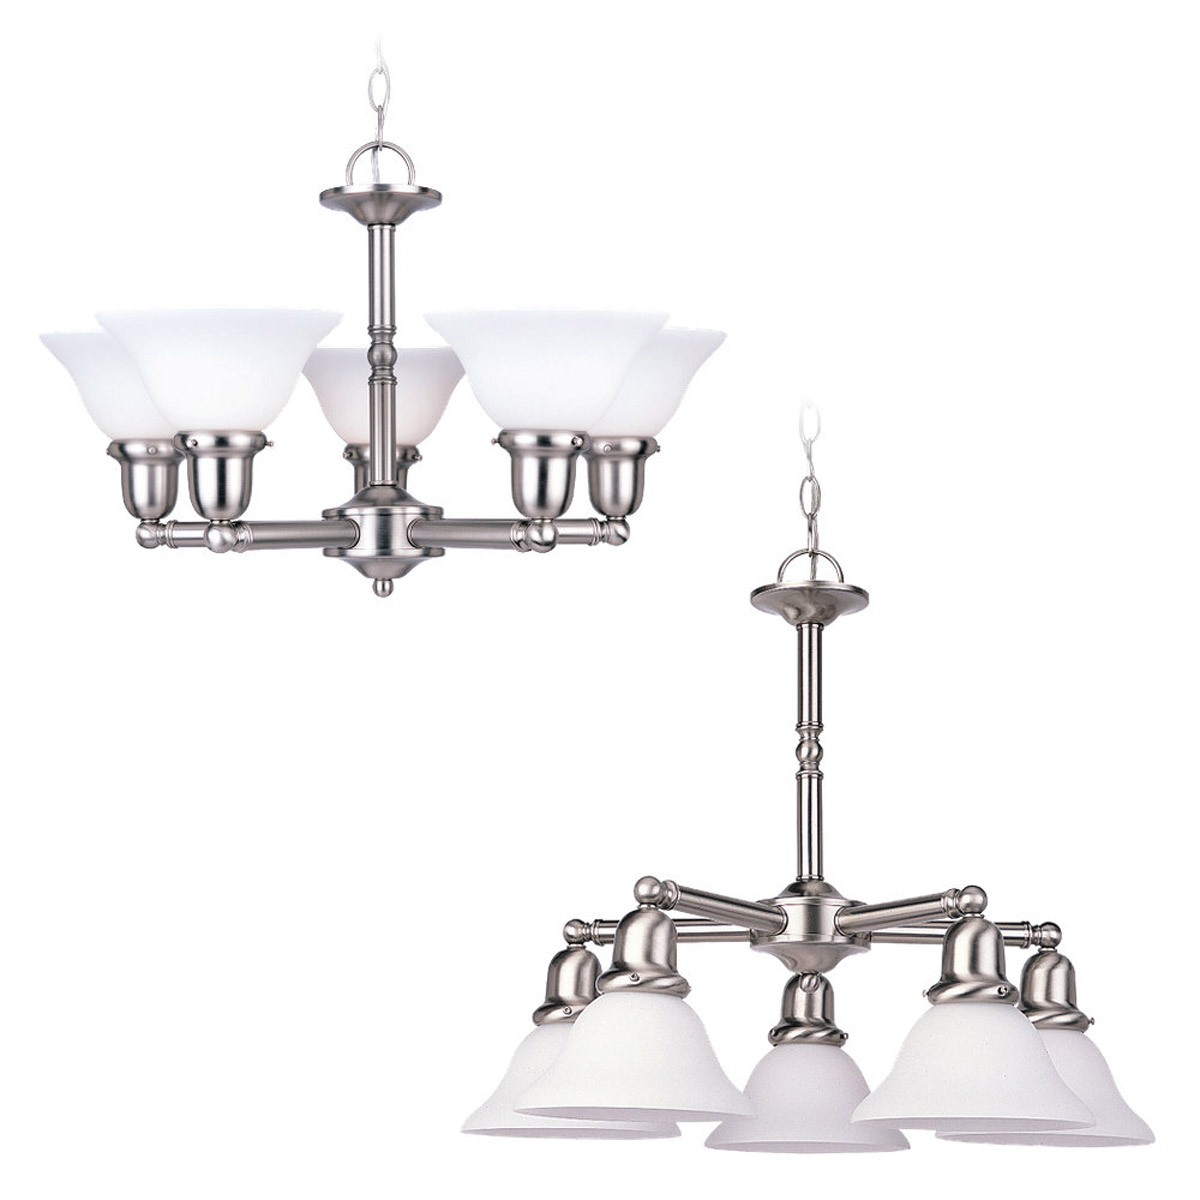 Sea Gull Lighting Sussex 5 Light Chandelier in Brushed Nickel 31061-962